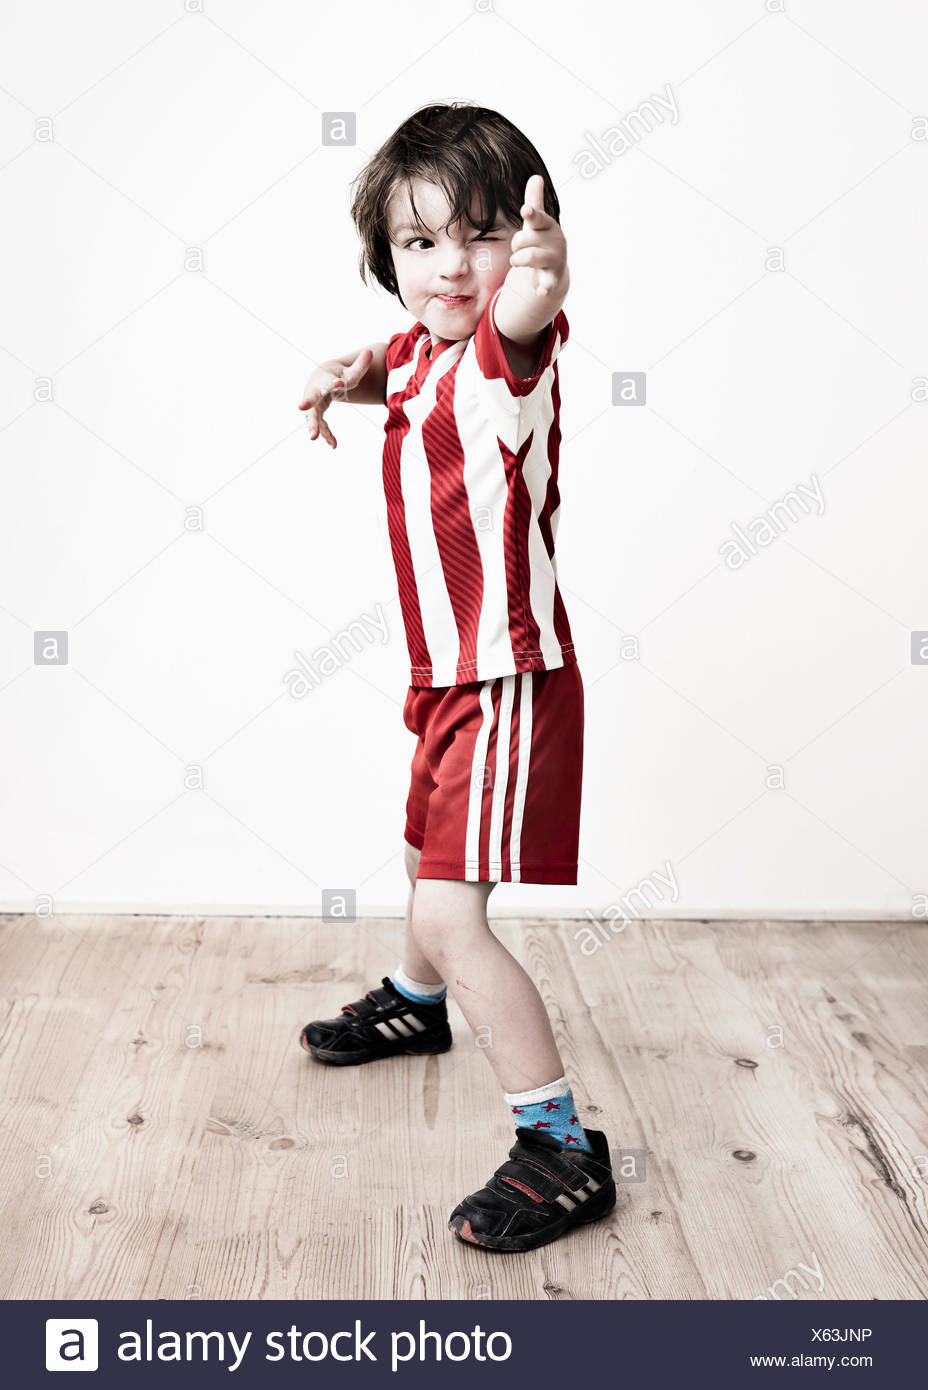 A boy in red and white striped shirt and football shorts standing pointing at the camera. - Stock Image